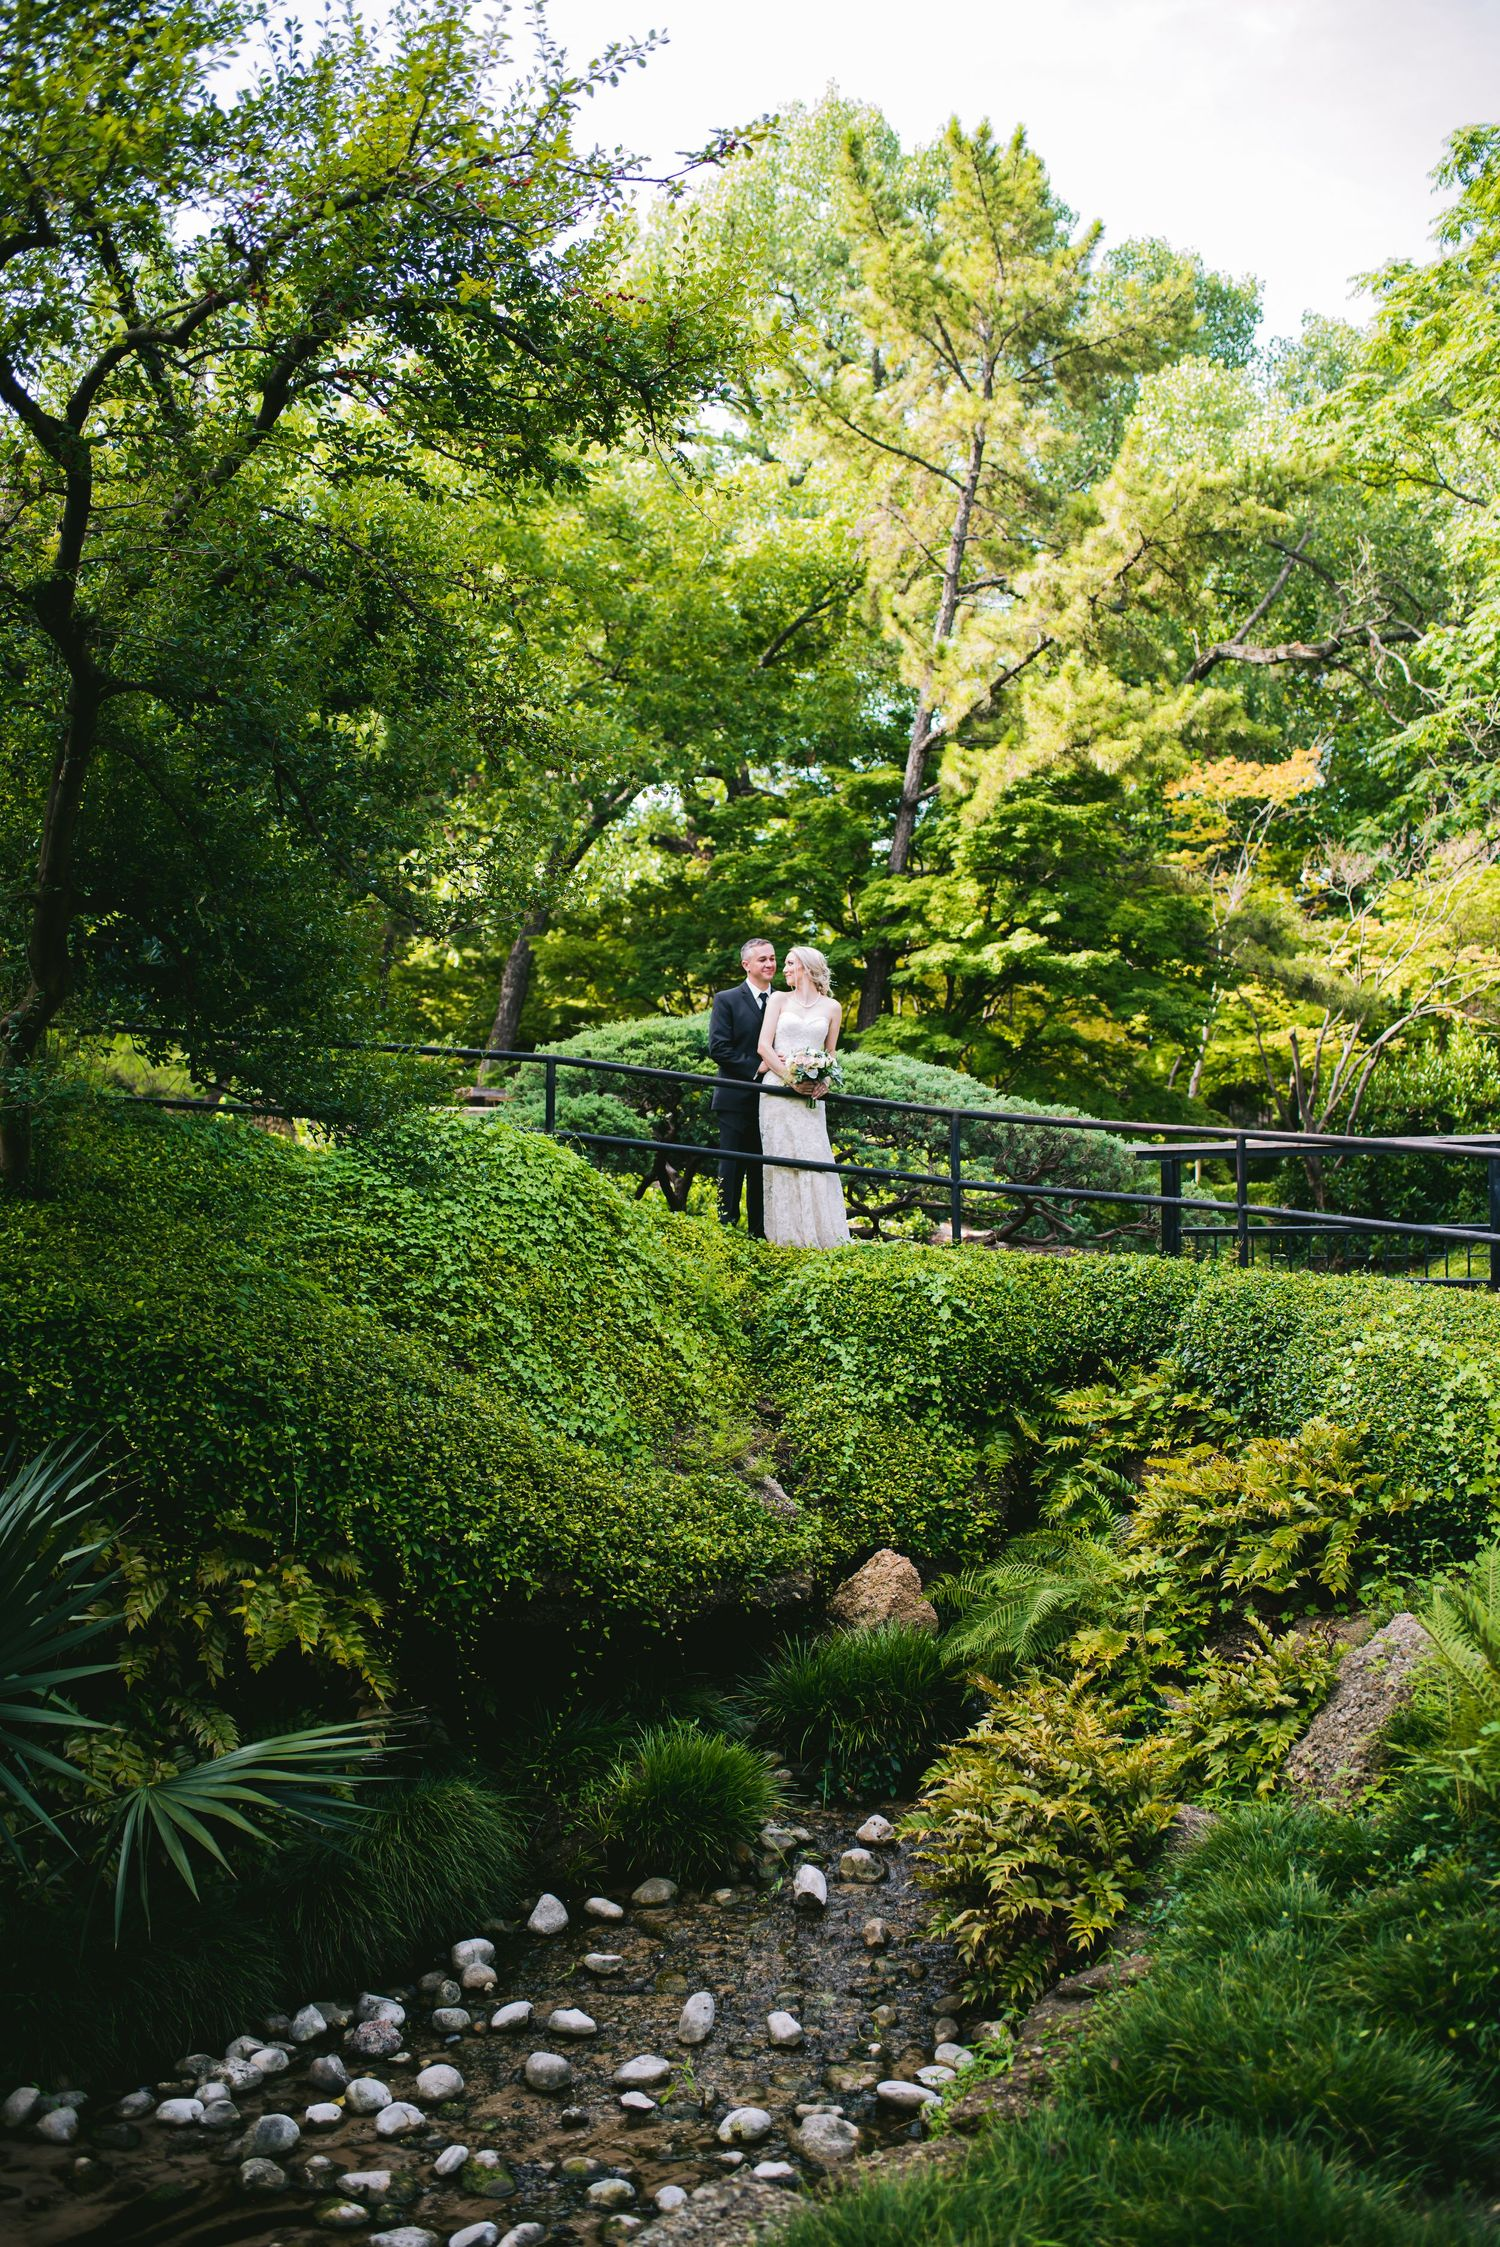 wedding photo at The Japanese Garden — Fort Worth Botanic Garden with the Dallas wedding photographer